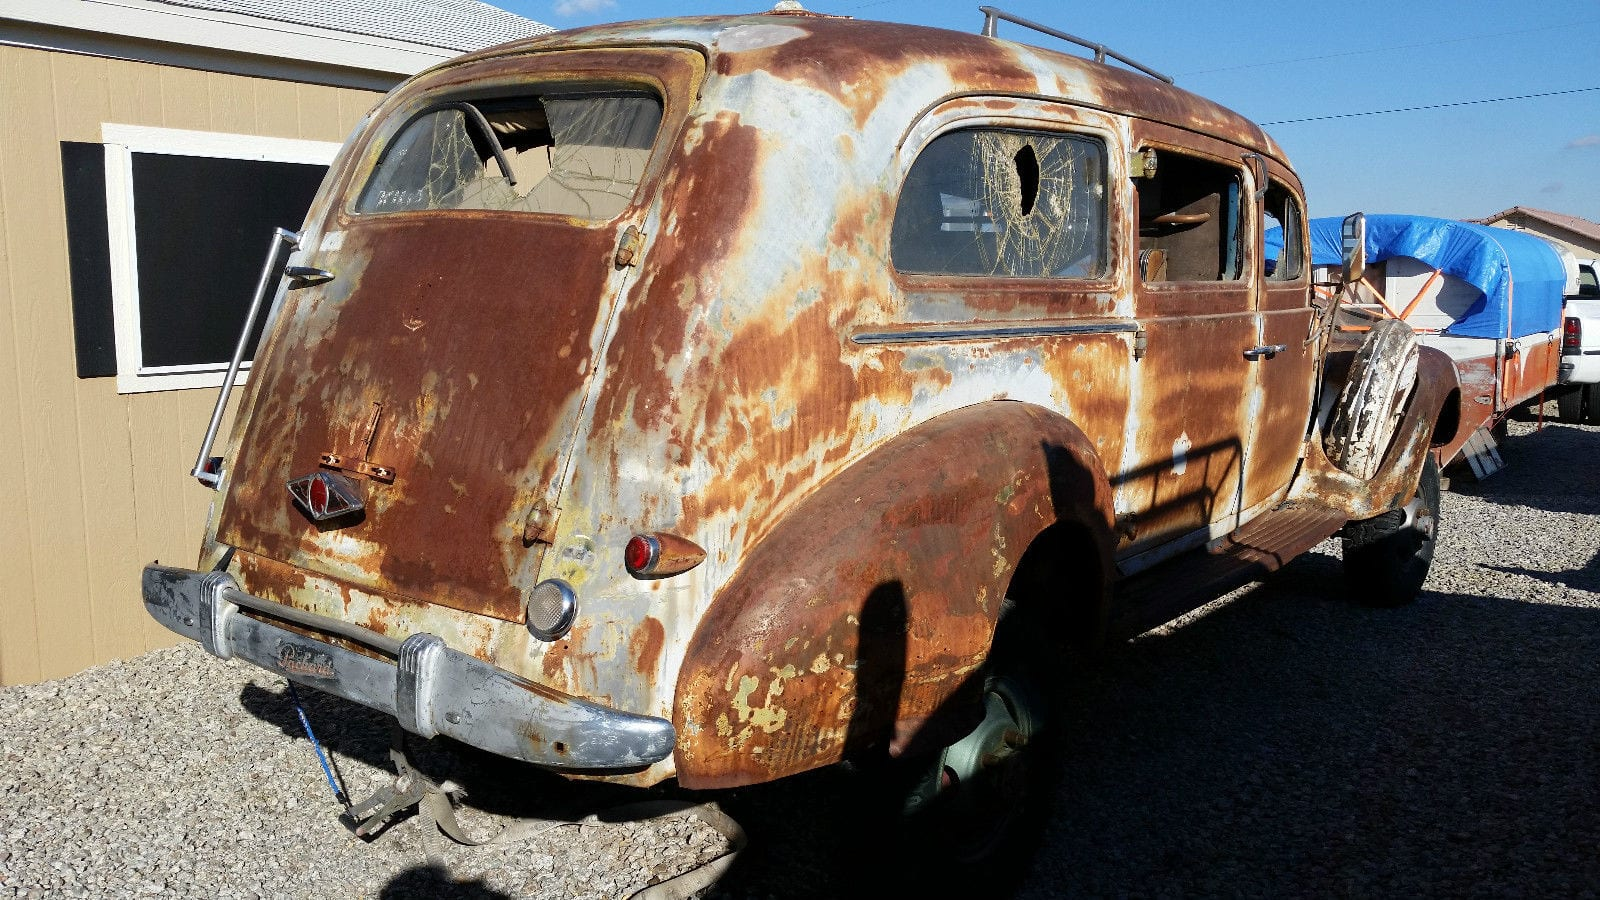 1942 Packard 4x4 Ambulance: A Suitable Project on which to